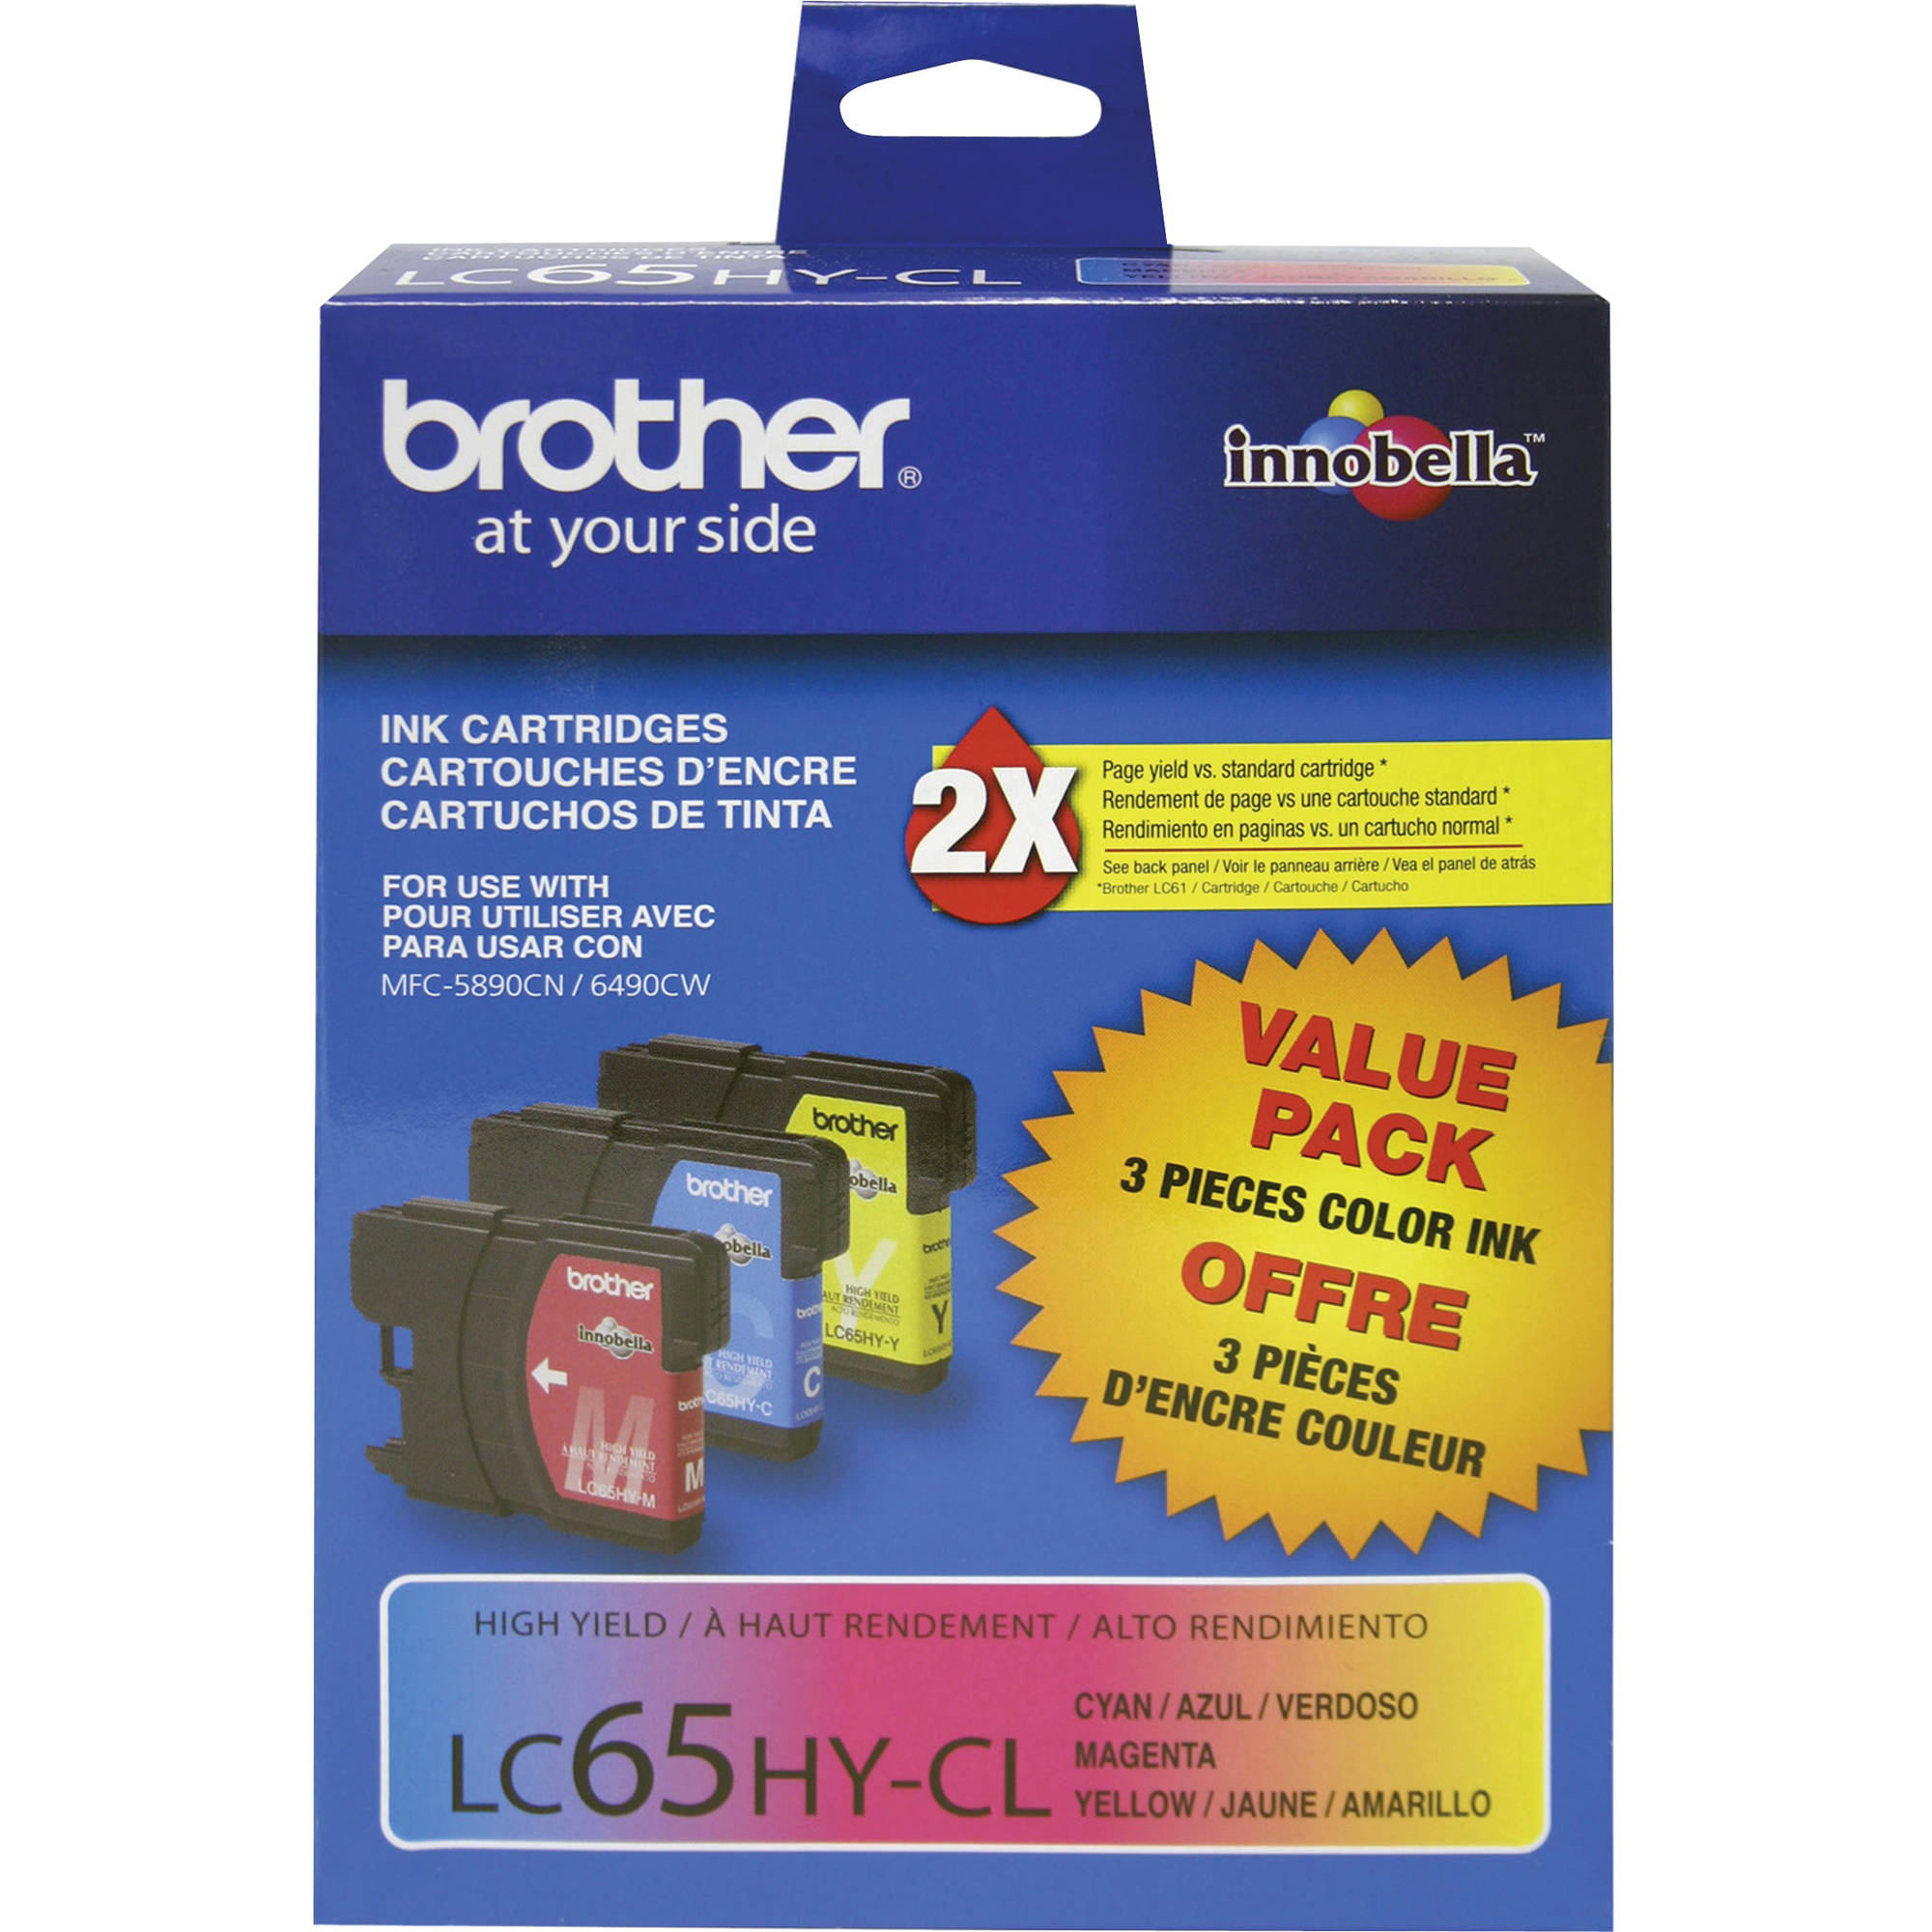 NEW DRIVERS: BROTHER MFC 5890 N